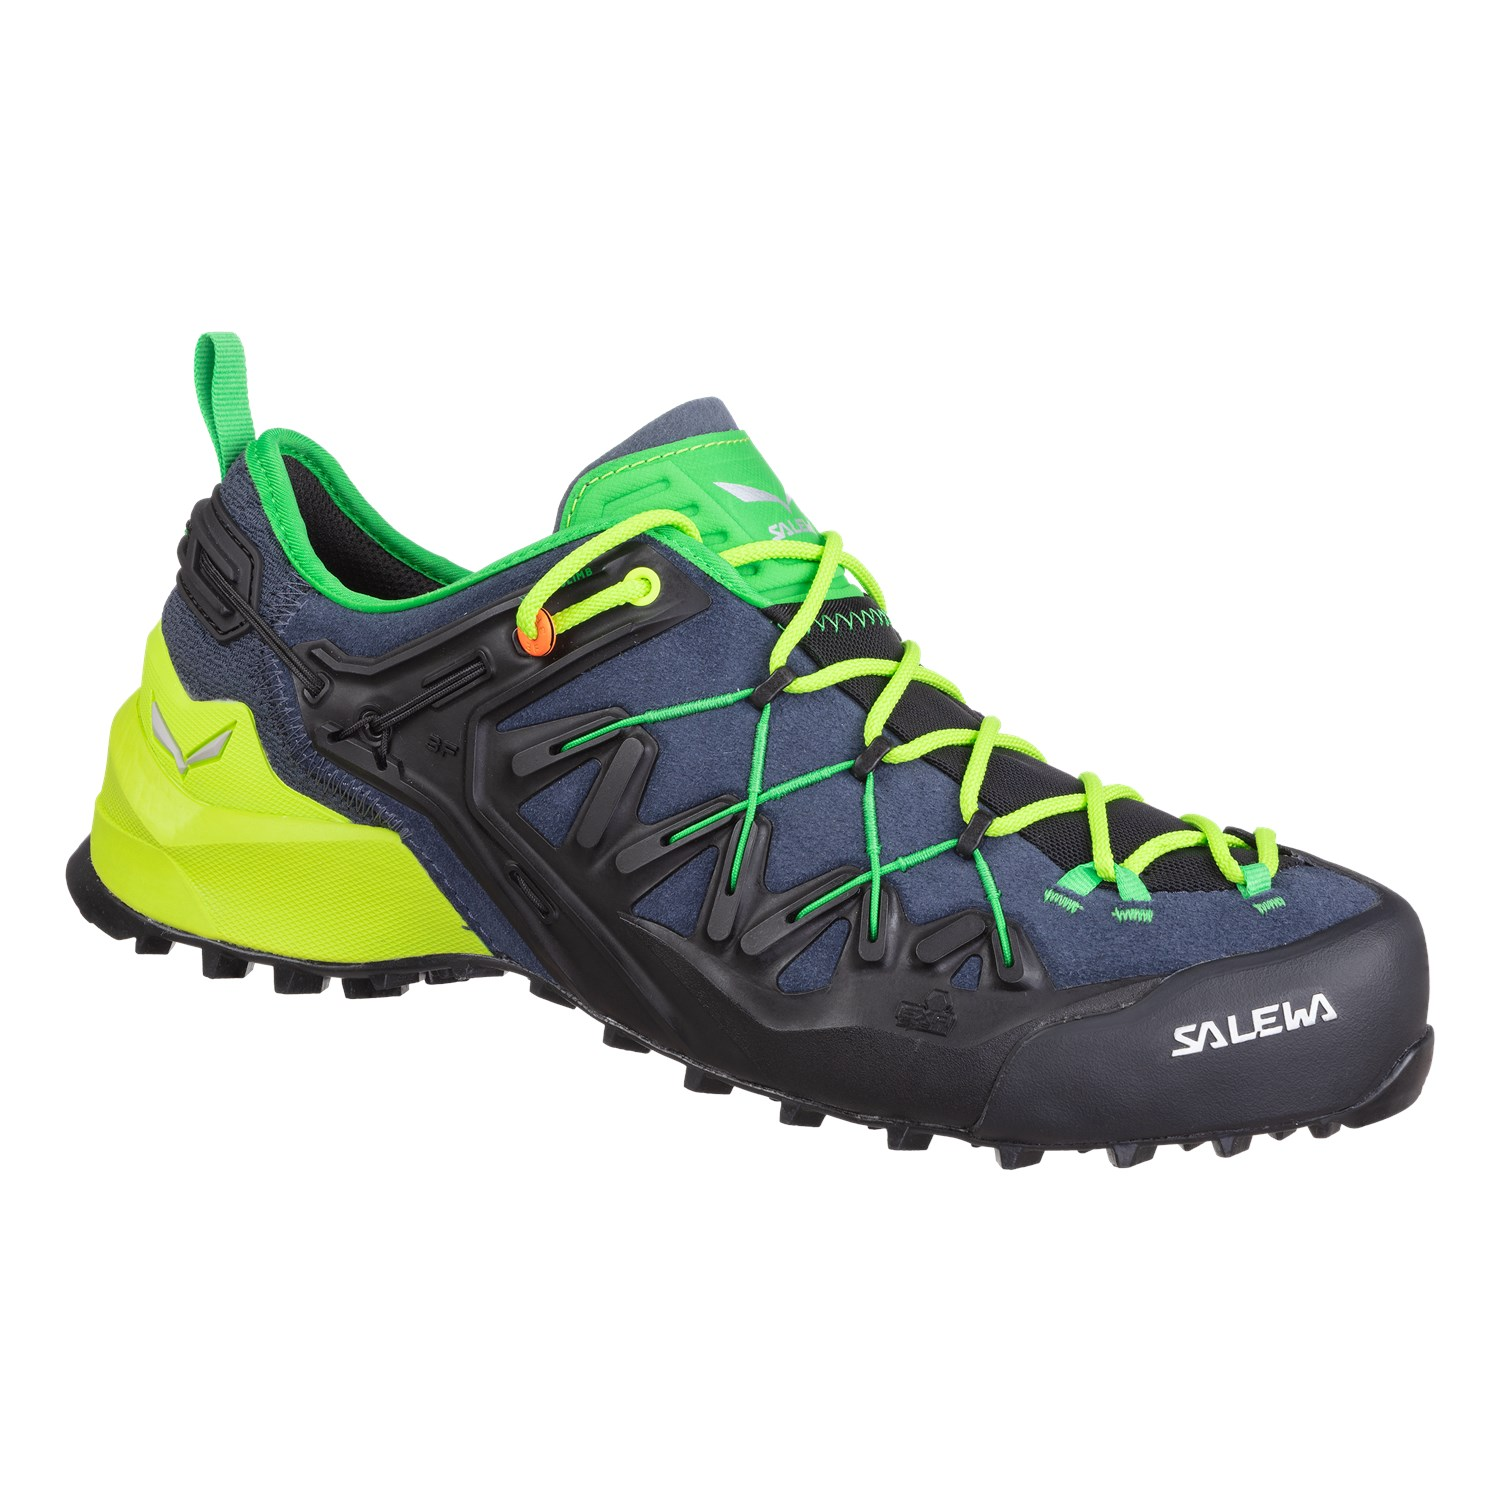 Salewa Wildfire Edge - Approach shoes - Men's